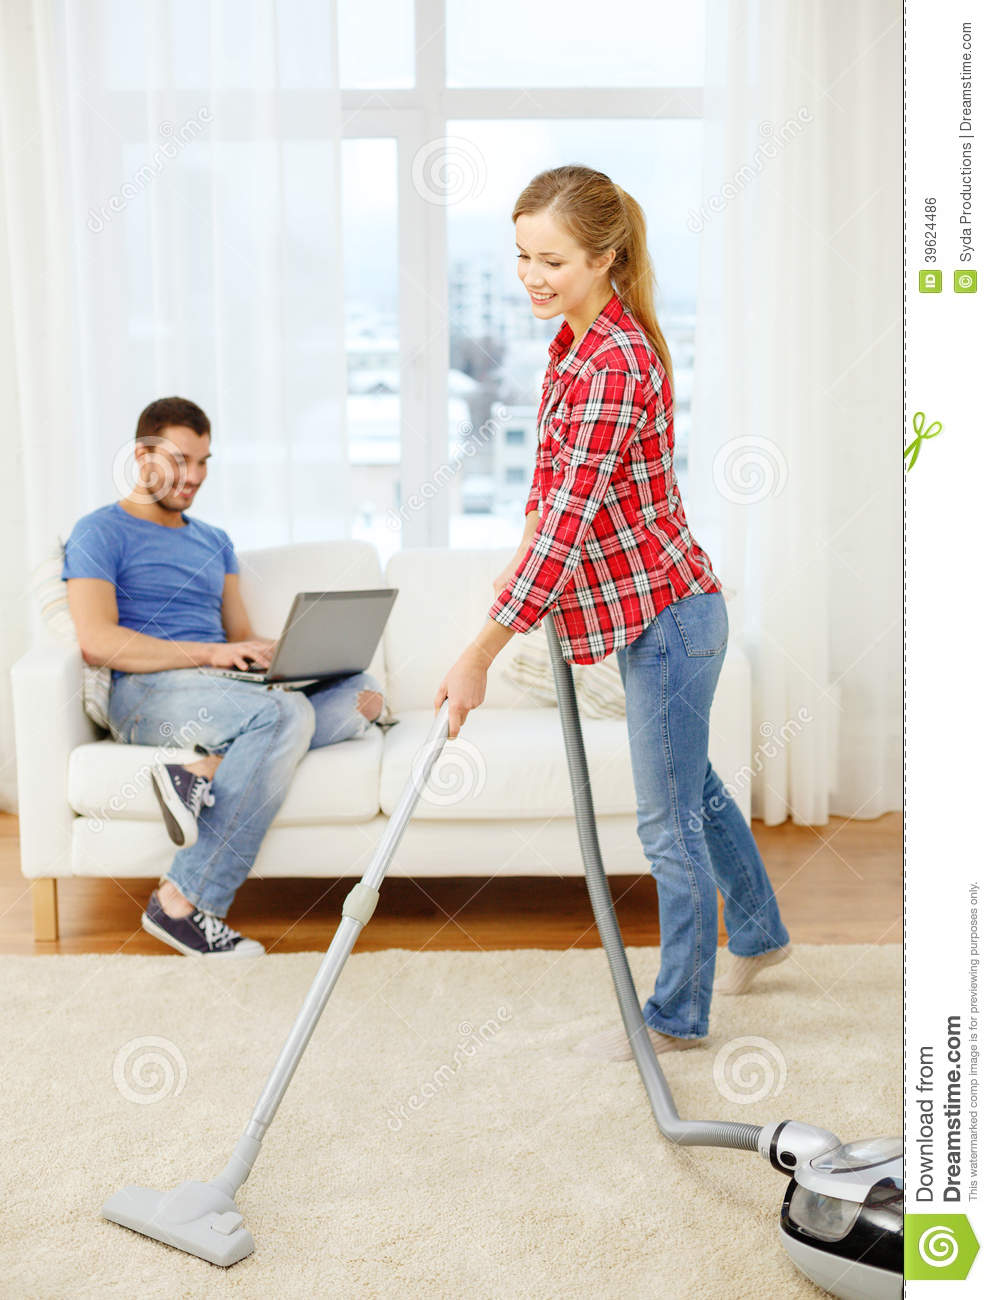 Smiling Woman With Hoover And Man Laptop Stock Photo